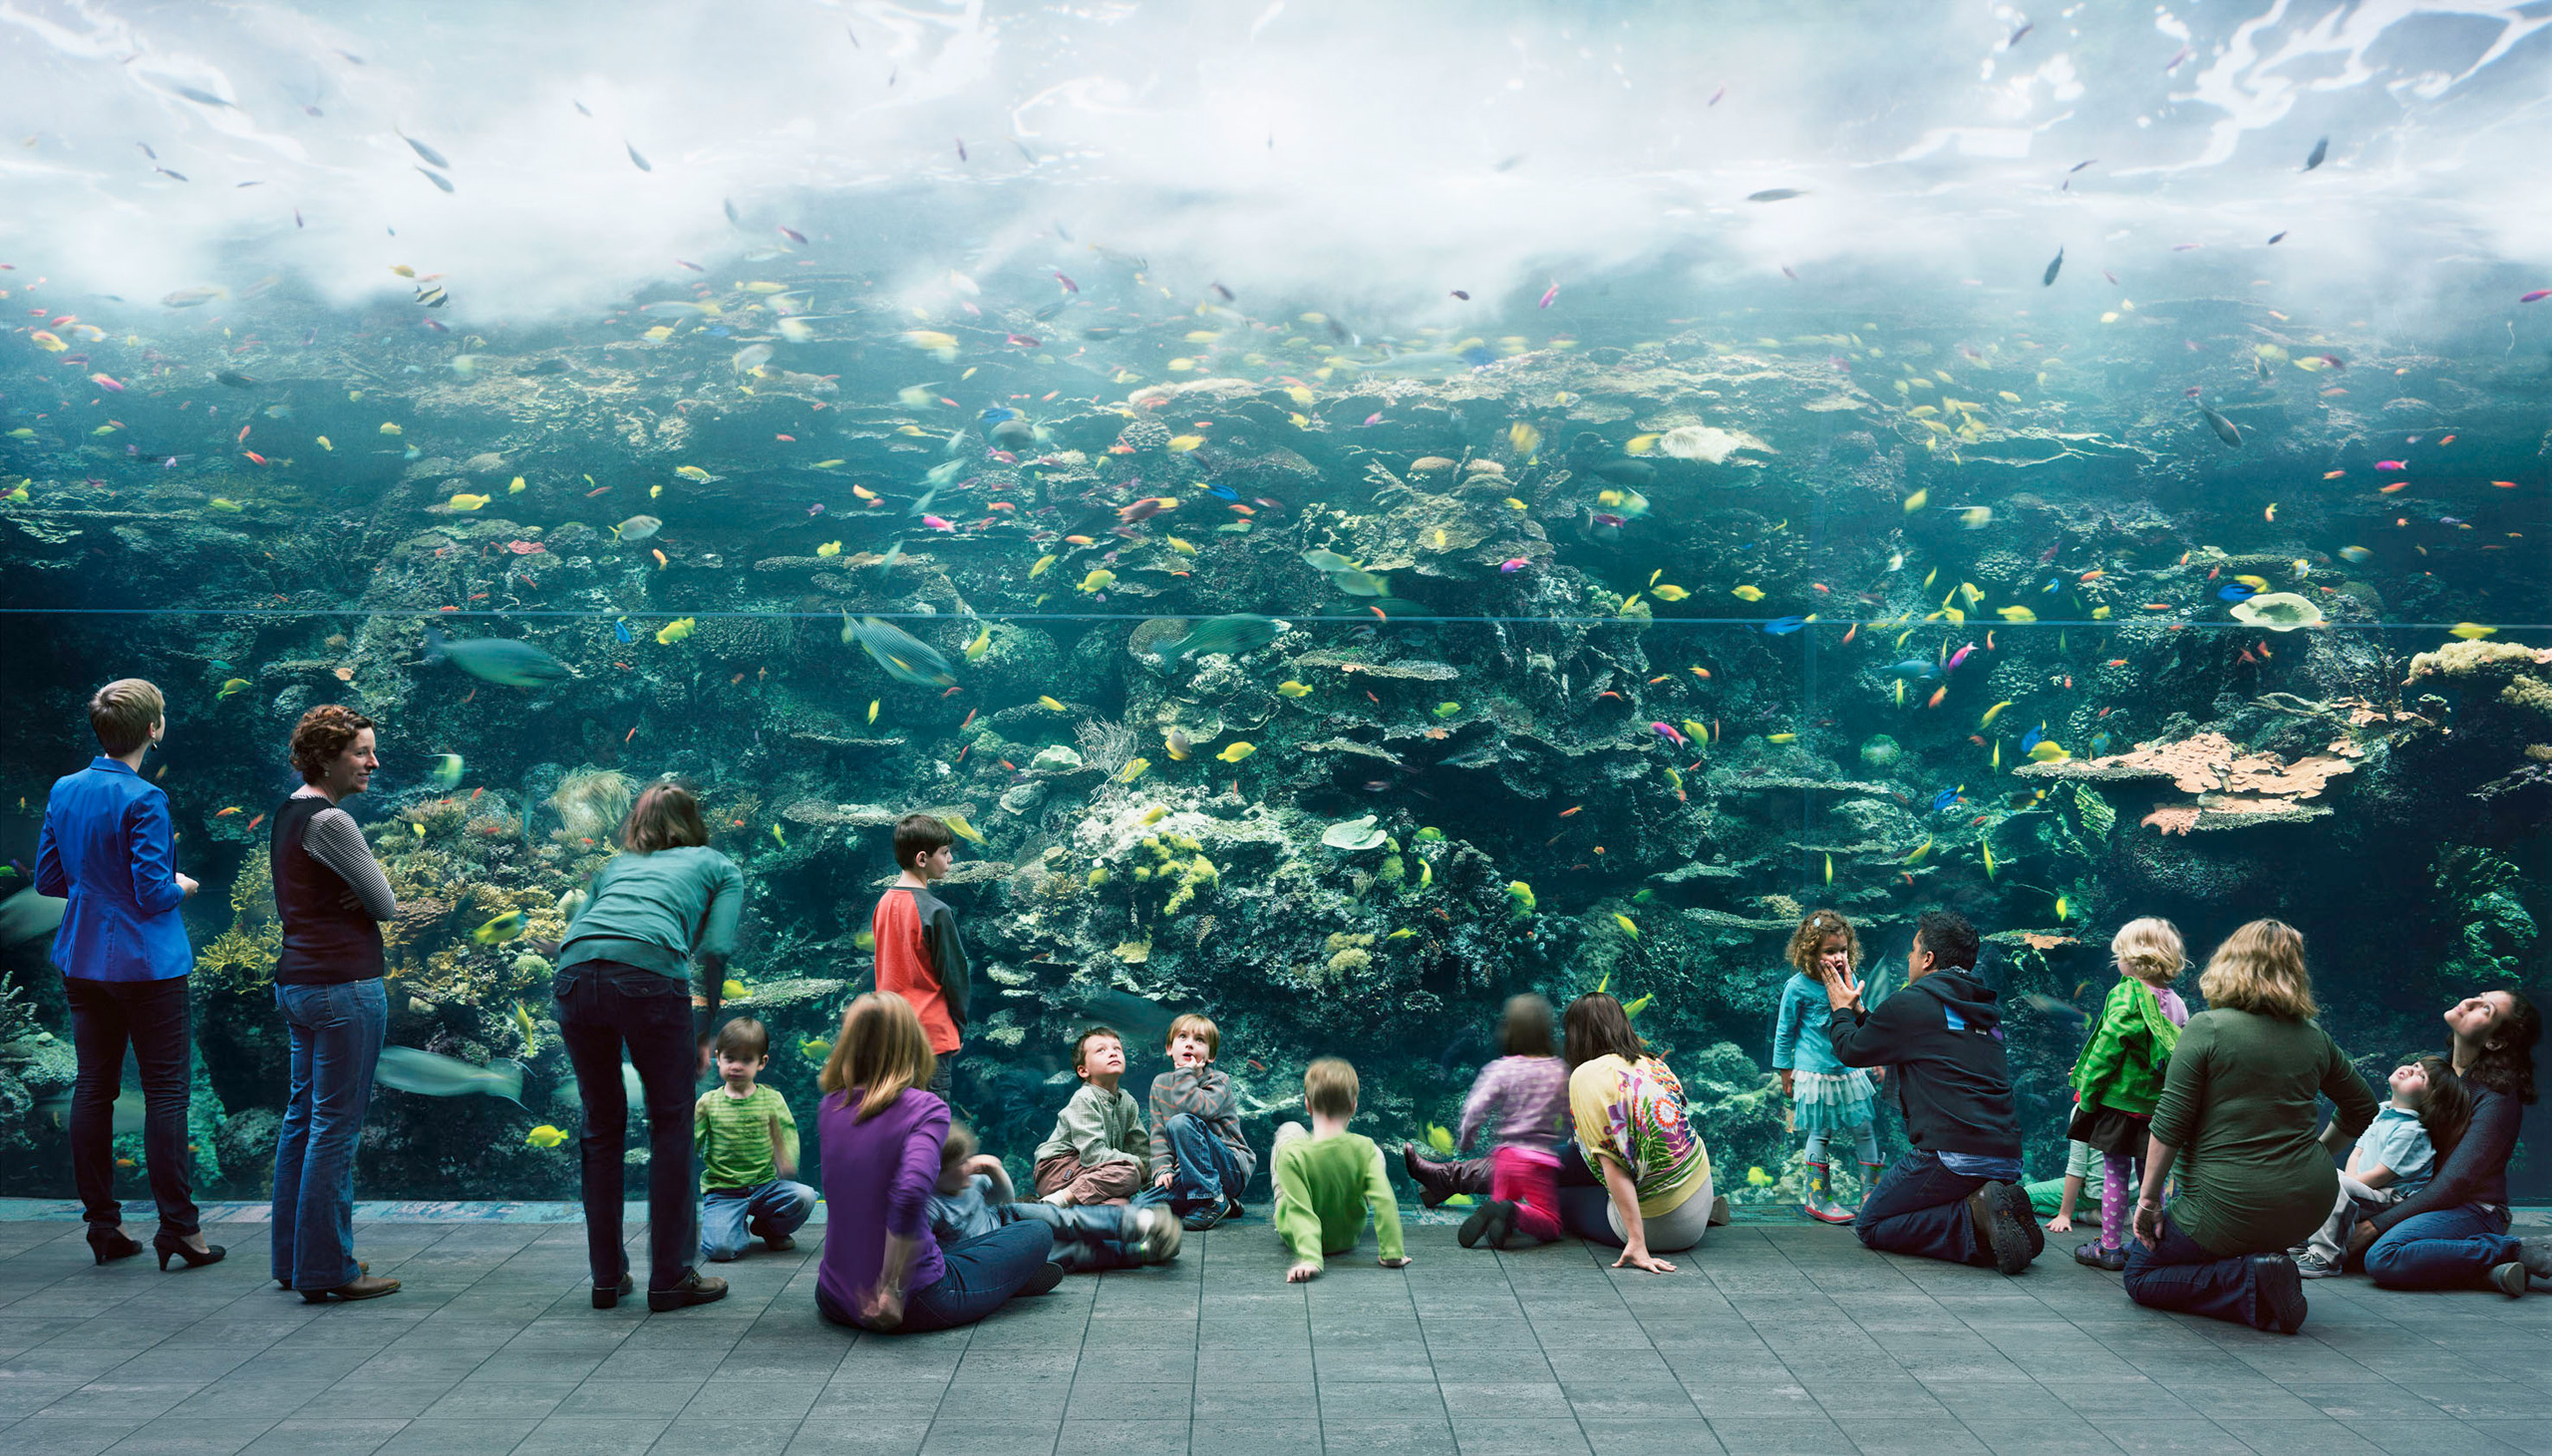 Thomas Struth (German, born 1954), Aquarium, Atlanta, Georgia, 2013, chromogenic print, 81.7 x 140.5 inches. High Museum of Art, Atlanta, purchase with funds from the Donald and Marilyn Keough Family, the Hagedorn Family, Lucinda W. Bunnen for the Bunnen Collection, and through prior acquisitions, 2014.23.